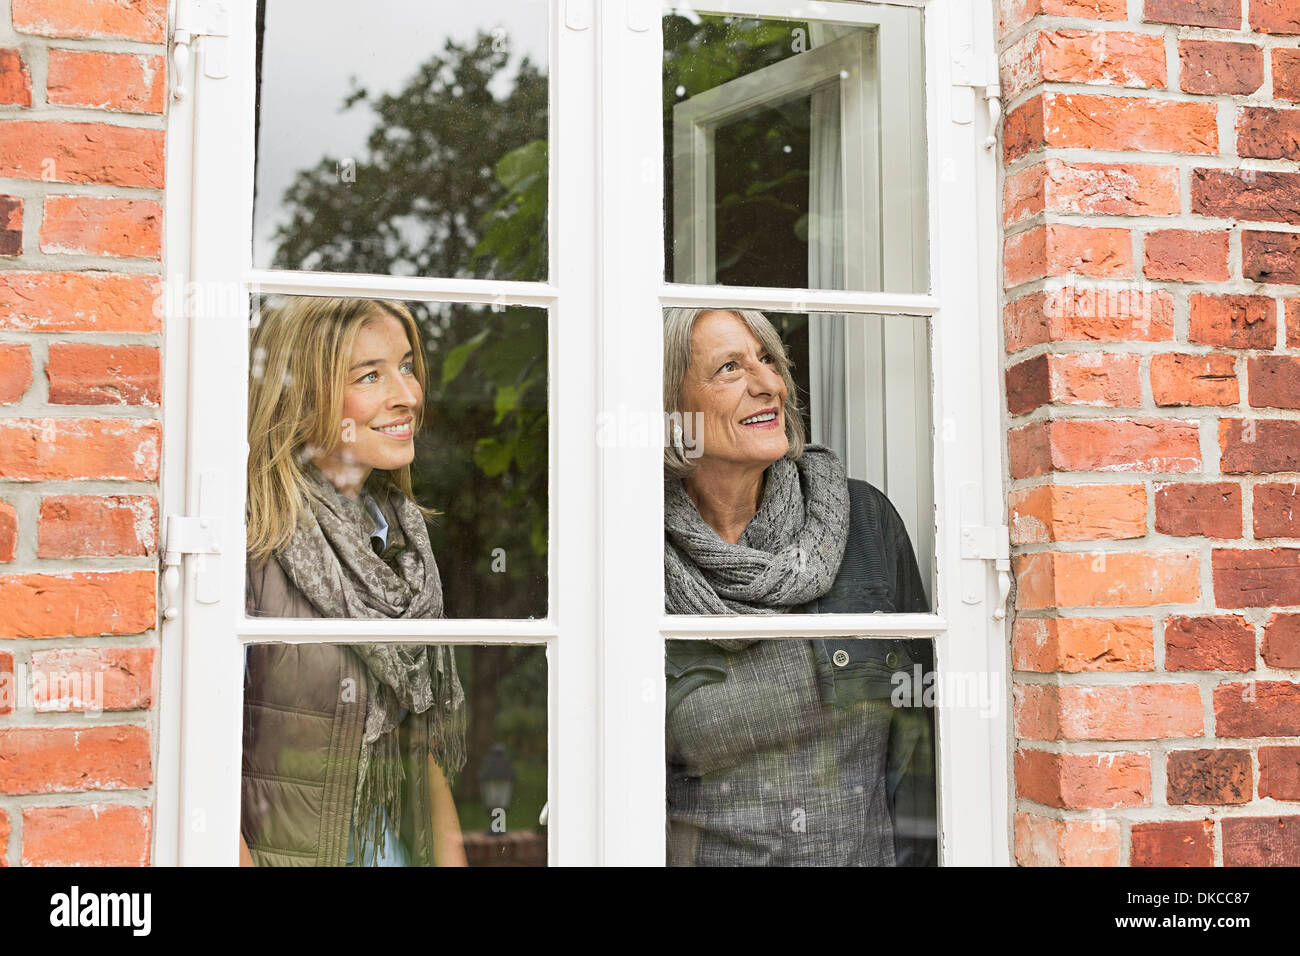 Mother and daughter looking through window - Stock Image